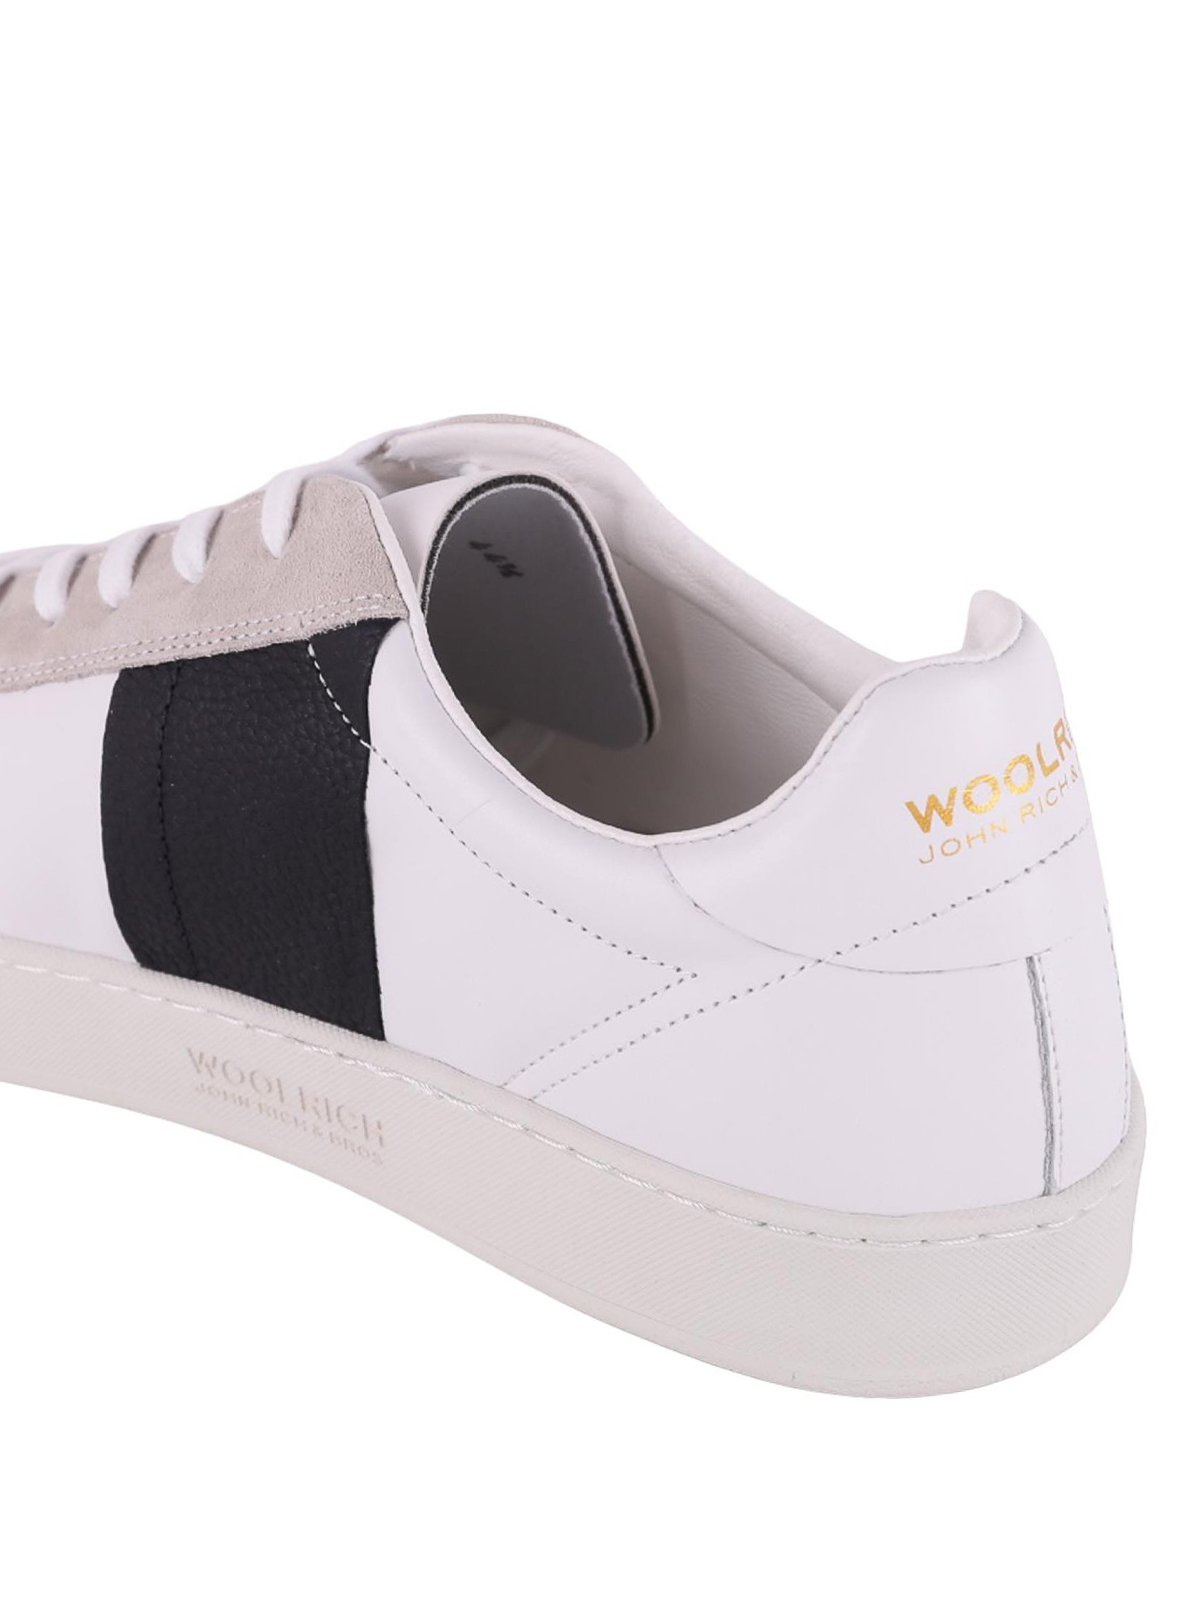 Woolrich - Court Low leather sneakers